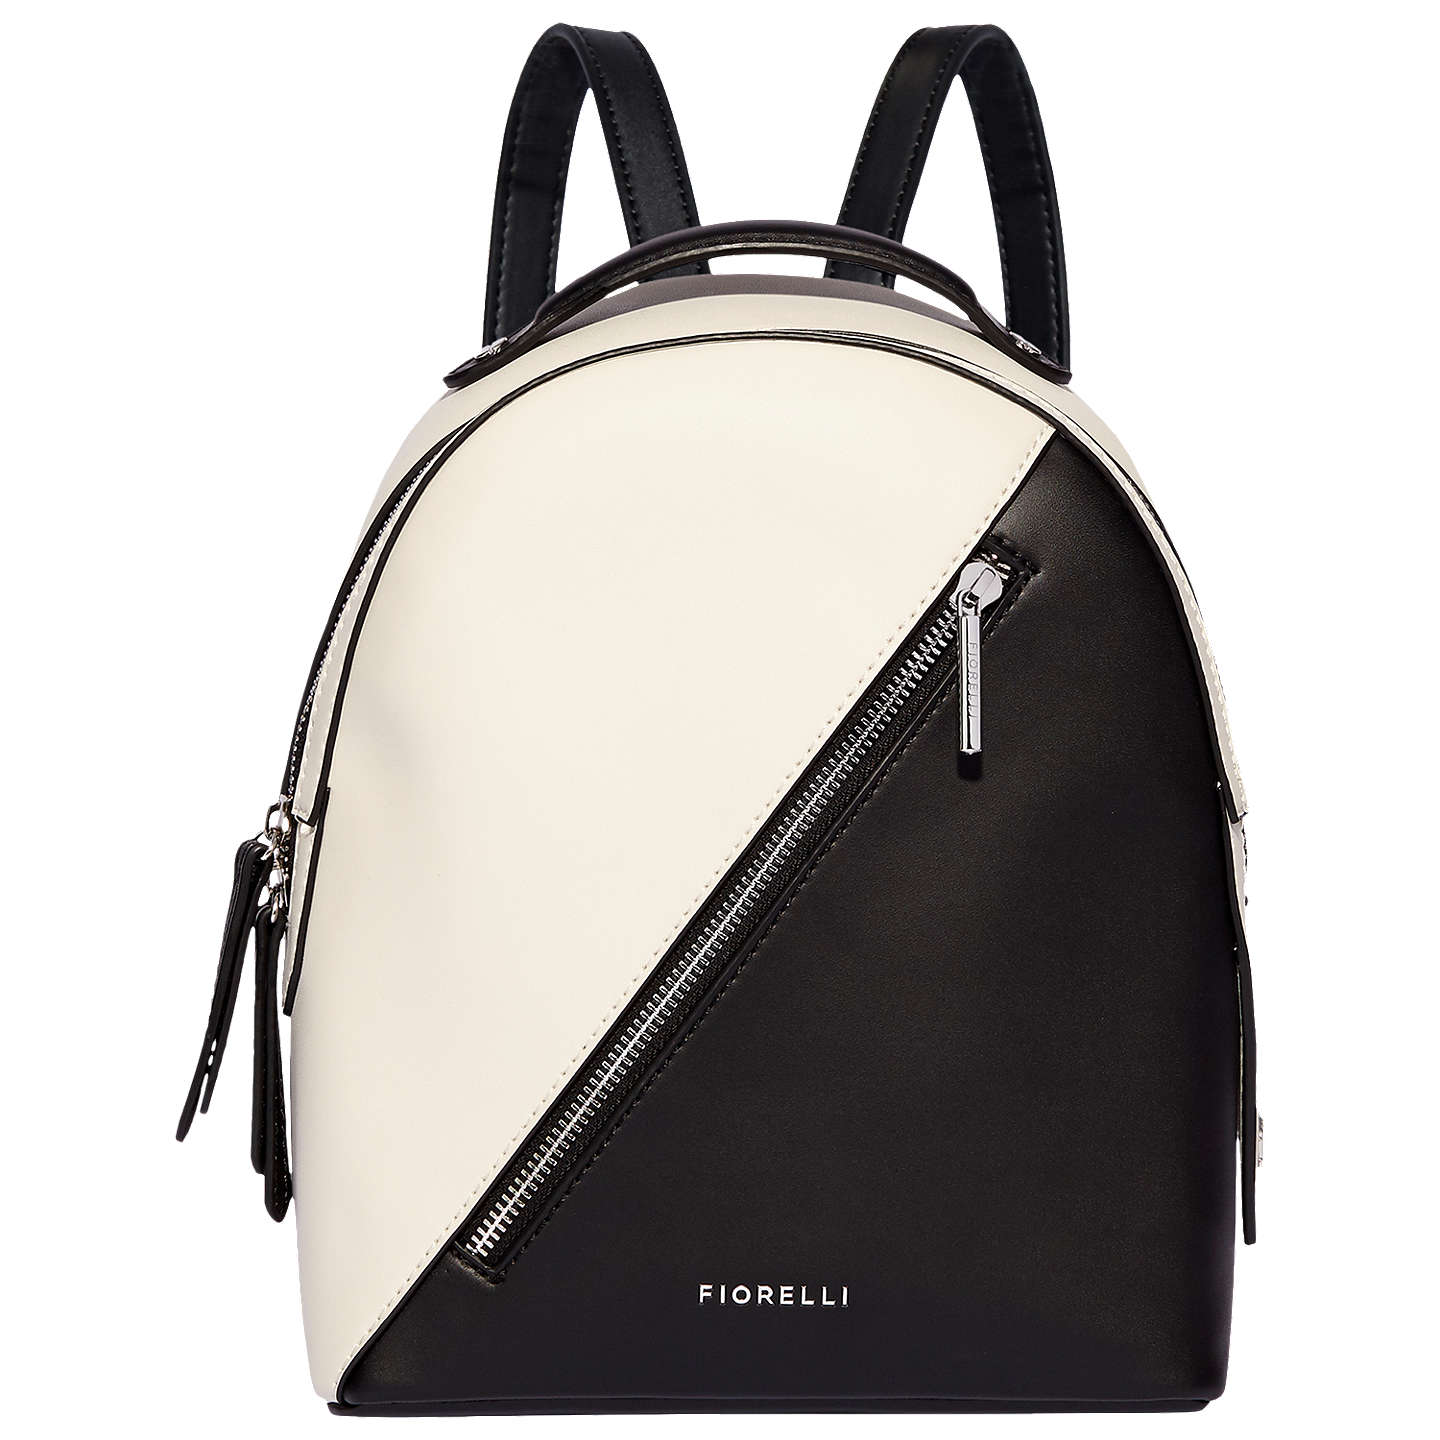 fiorelli-anouk-small-backpack,-black_white by fiorelli